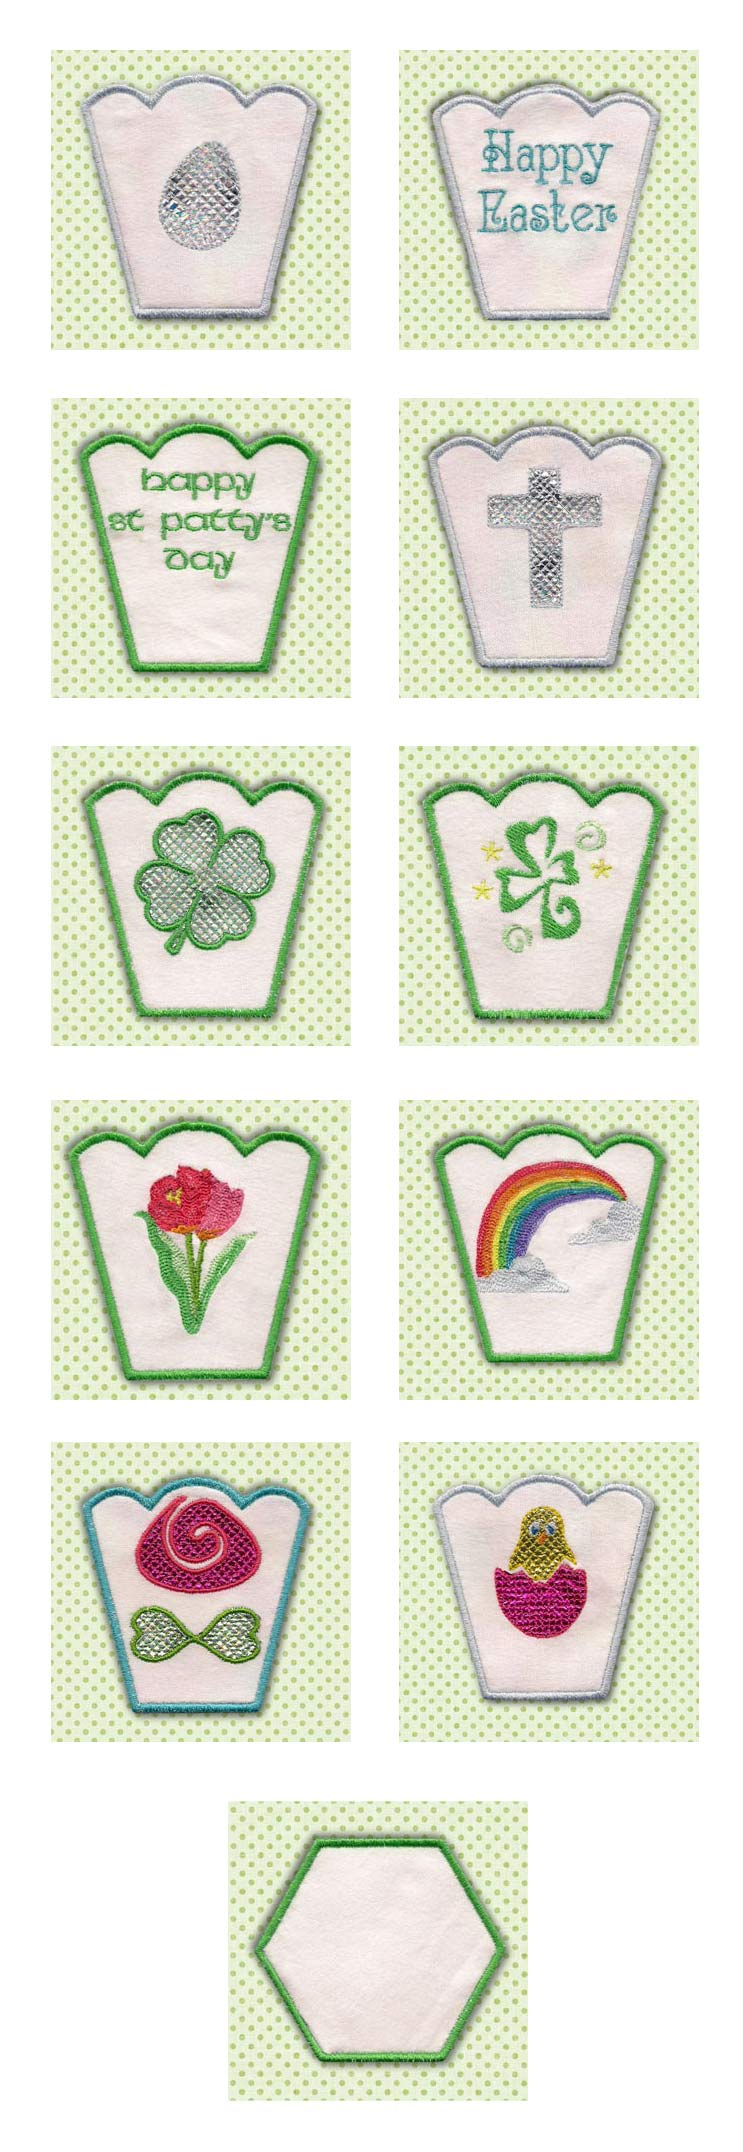 Spring Bowls Embroidery Machine Design Details